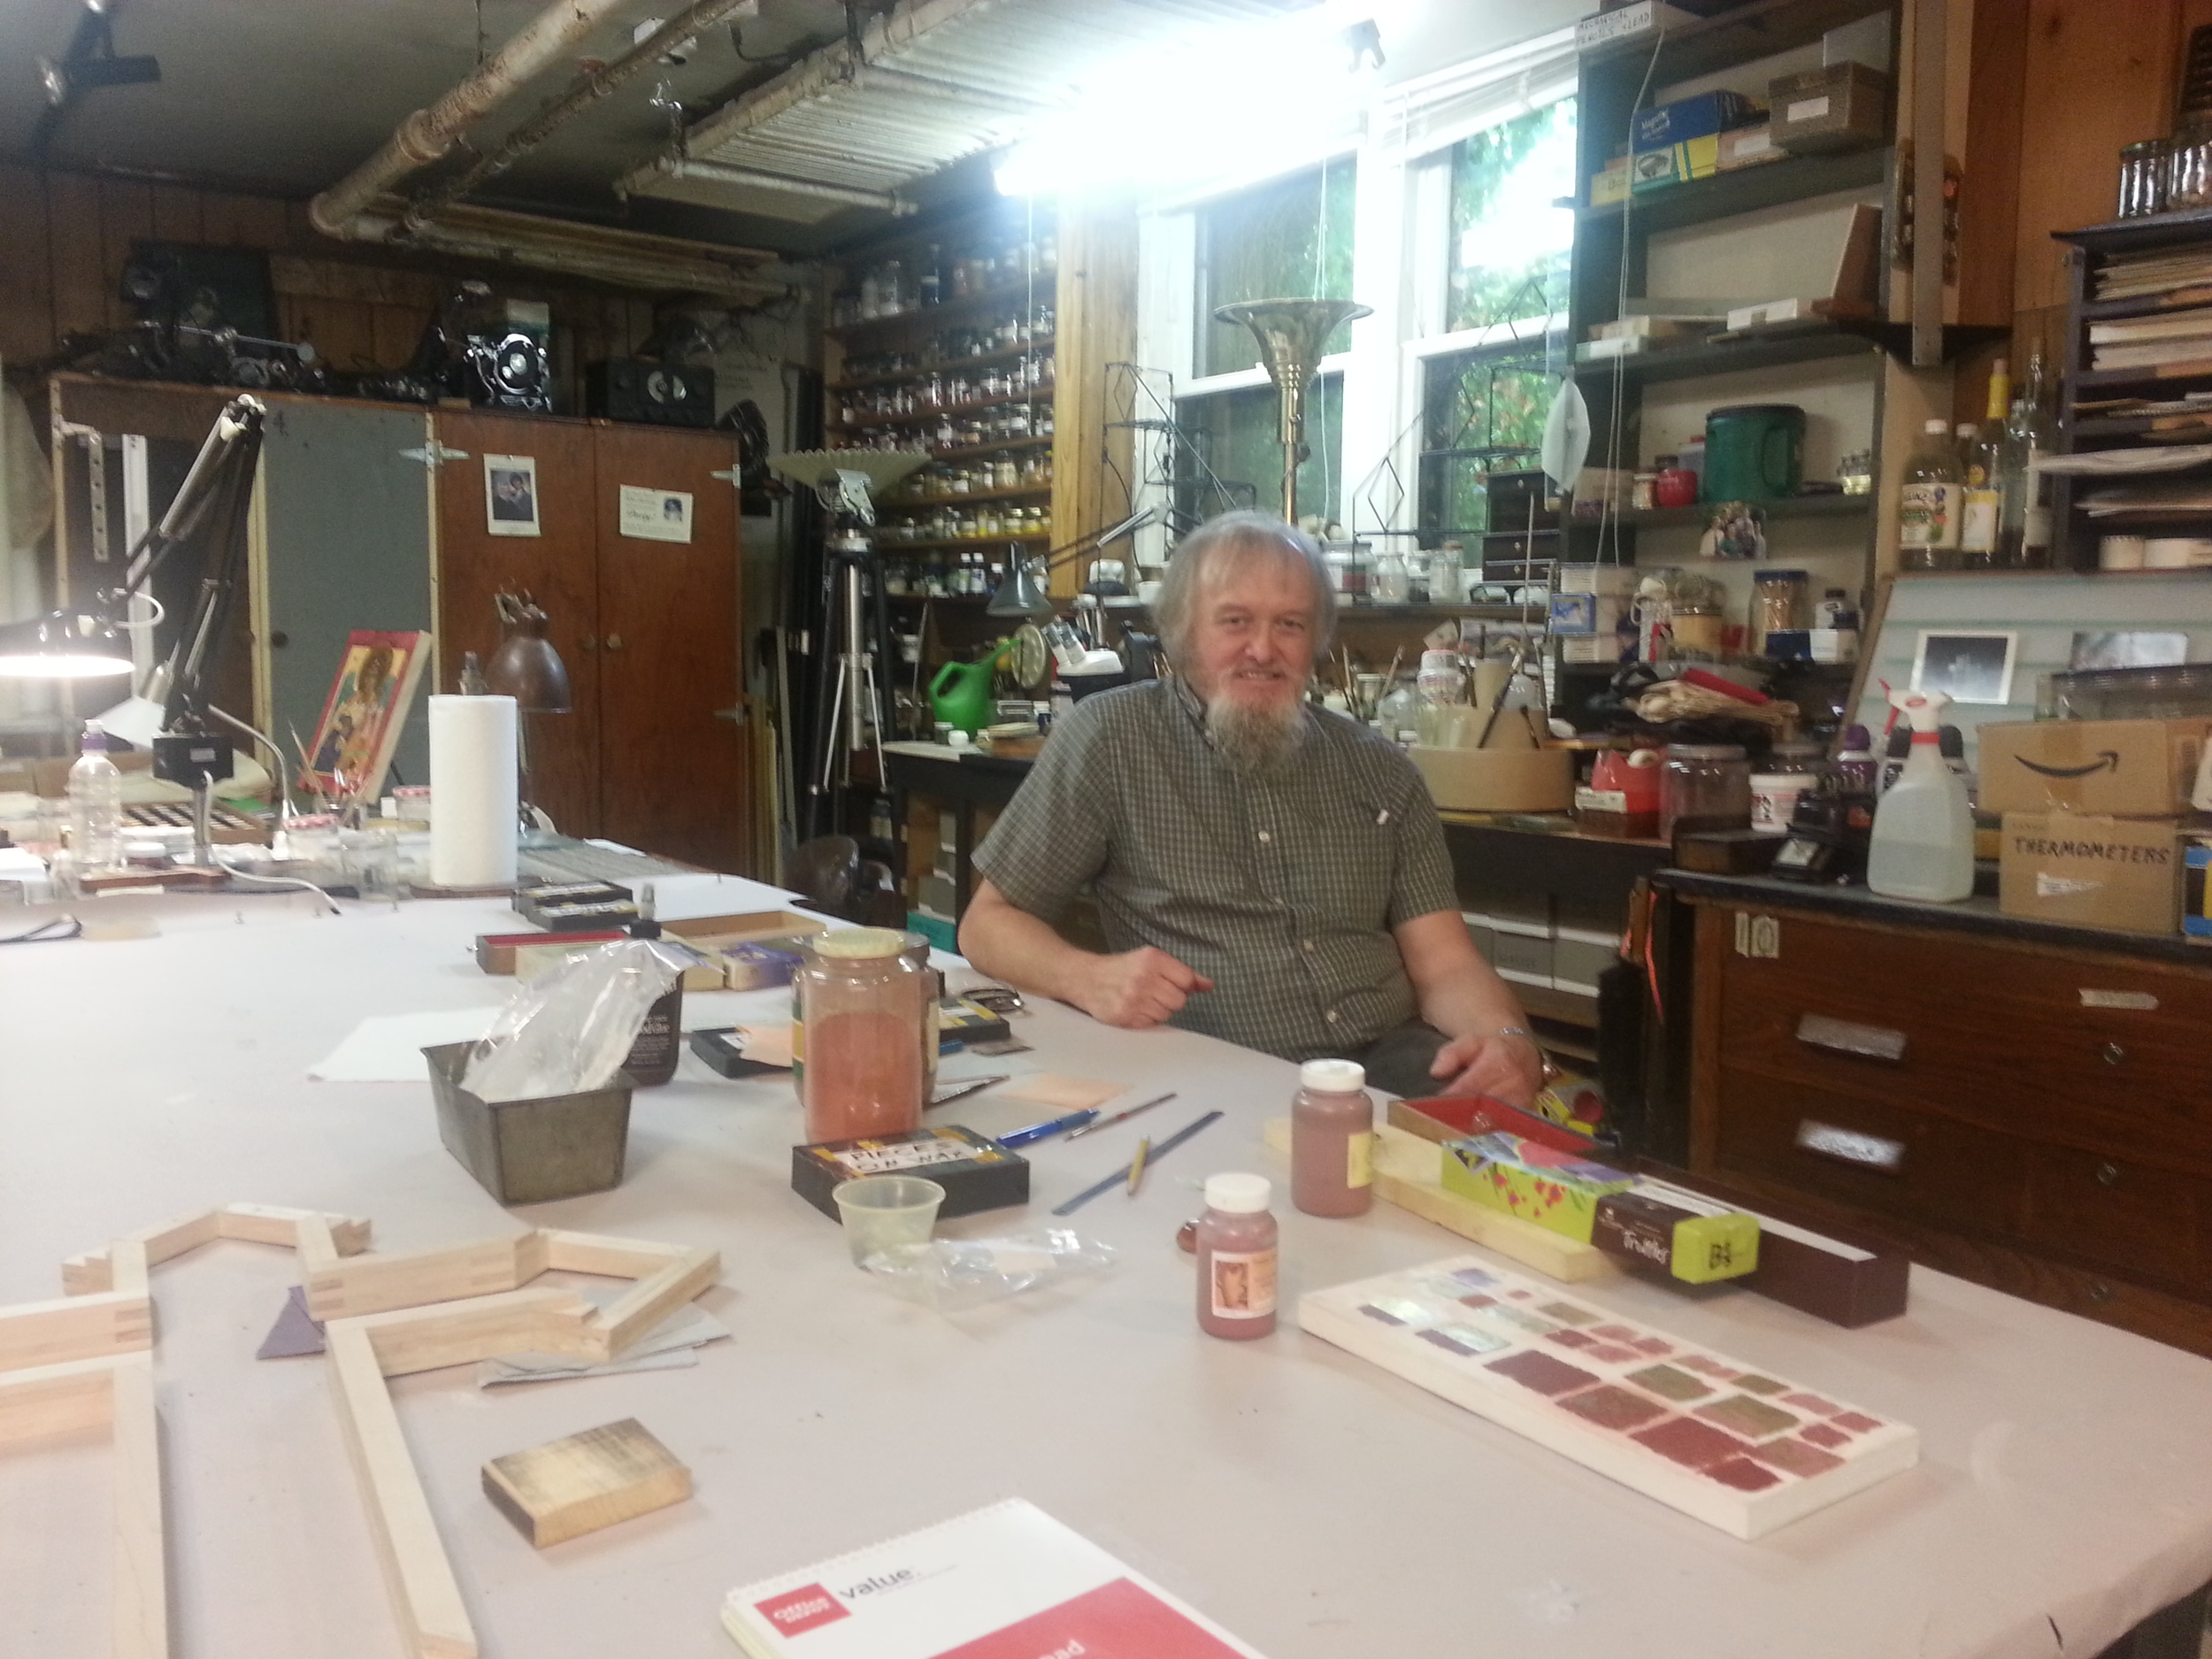 The artists David Abel Johnson showing me how to apply gold leaf